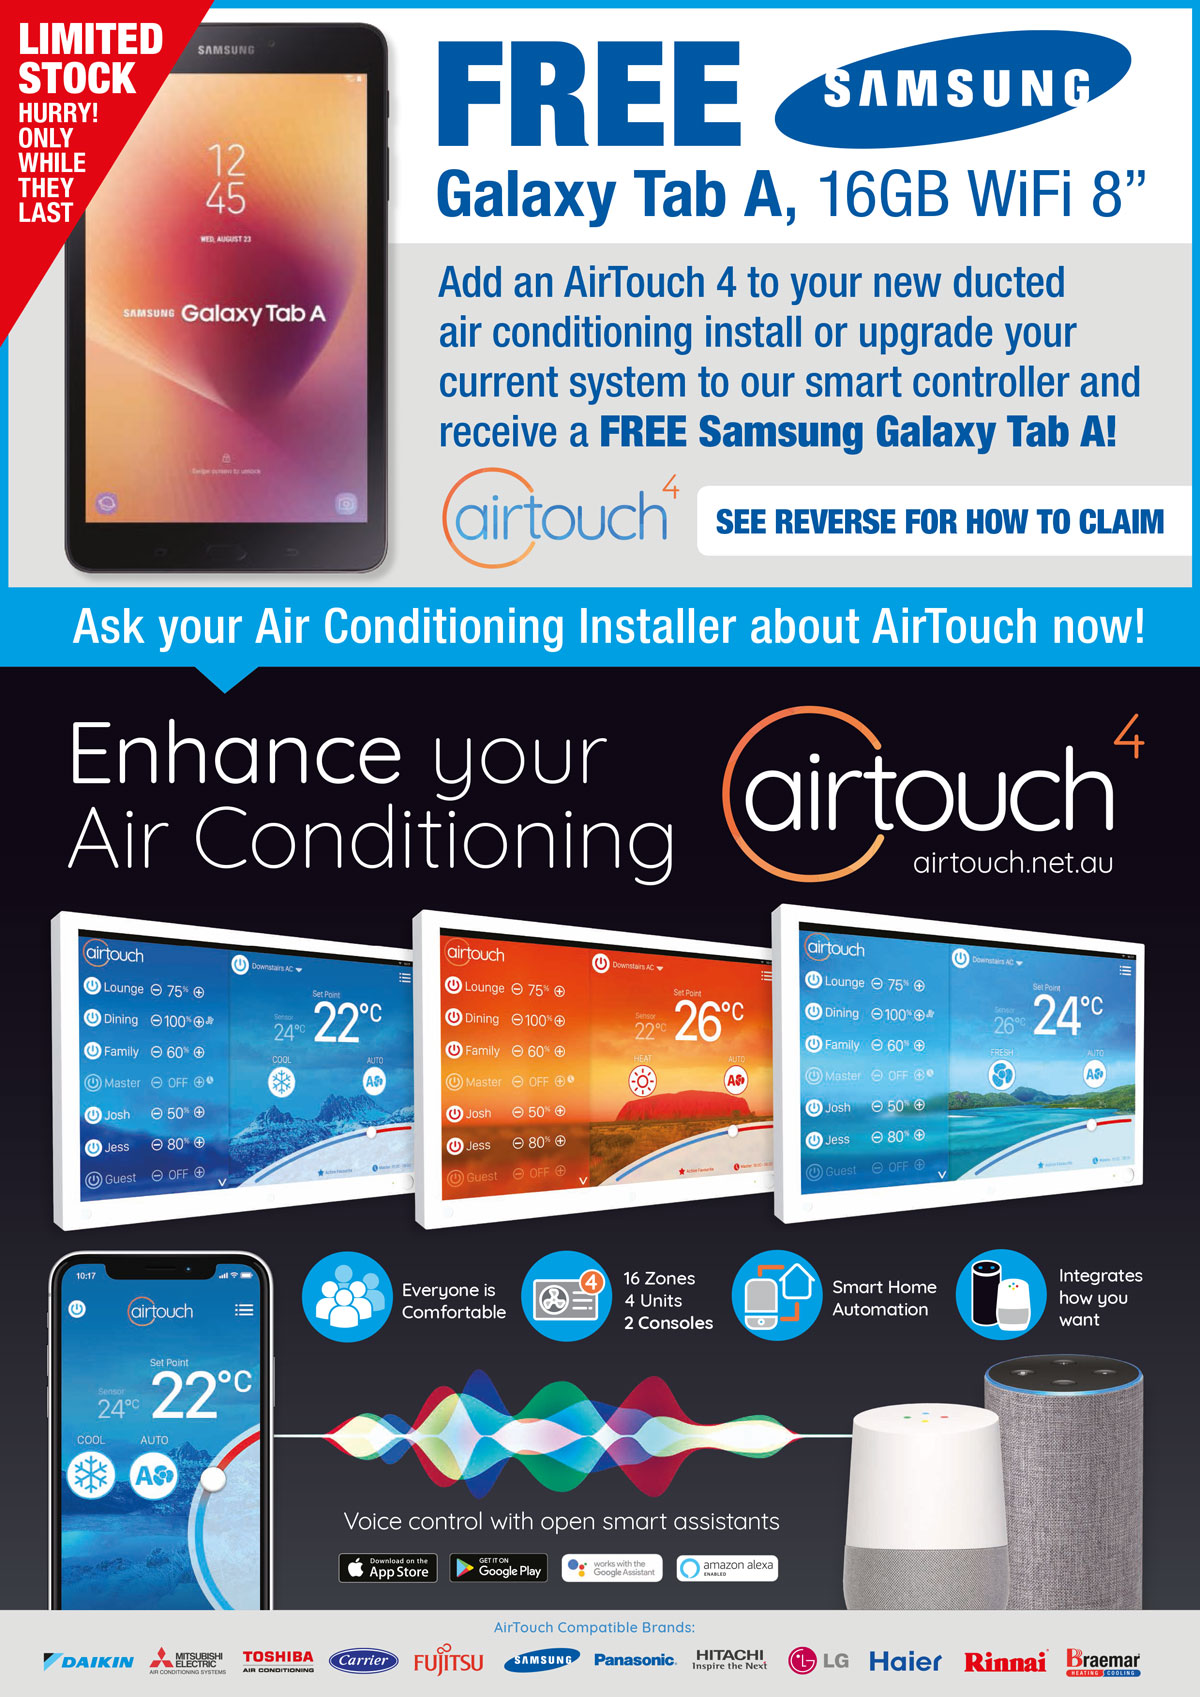 https://www.masteraircon.com.au/wp-content/uploads/2019/07/QLDNSWM-AirTouch4FreeSamsungTabA-July-Aug2019_TC-1.jpg